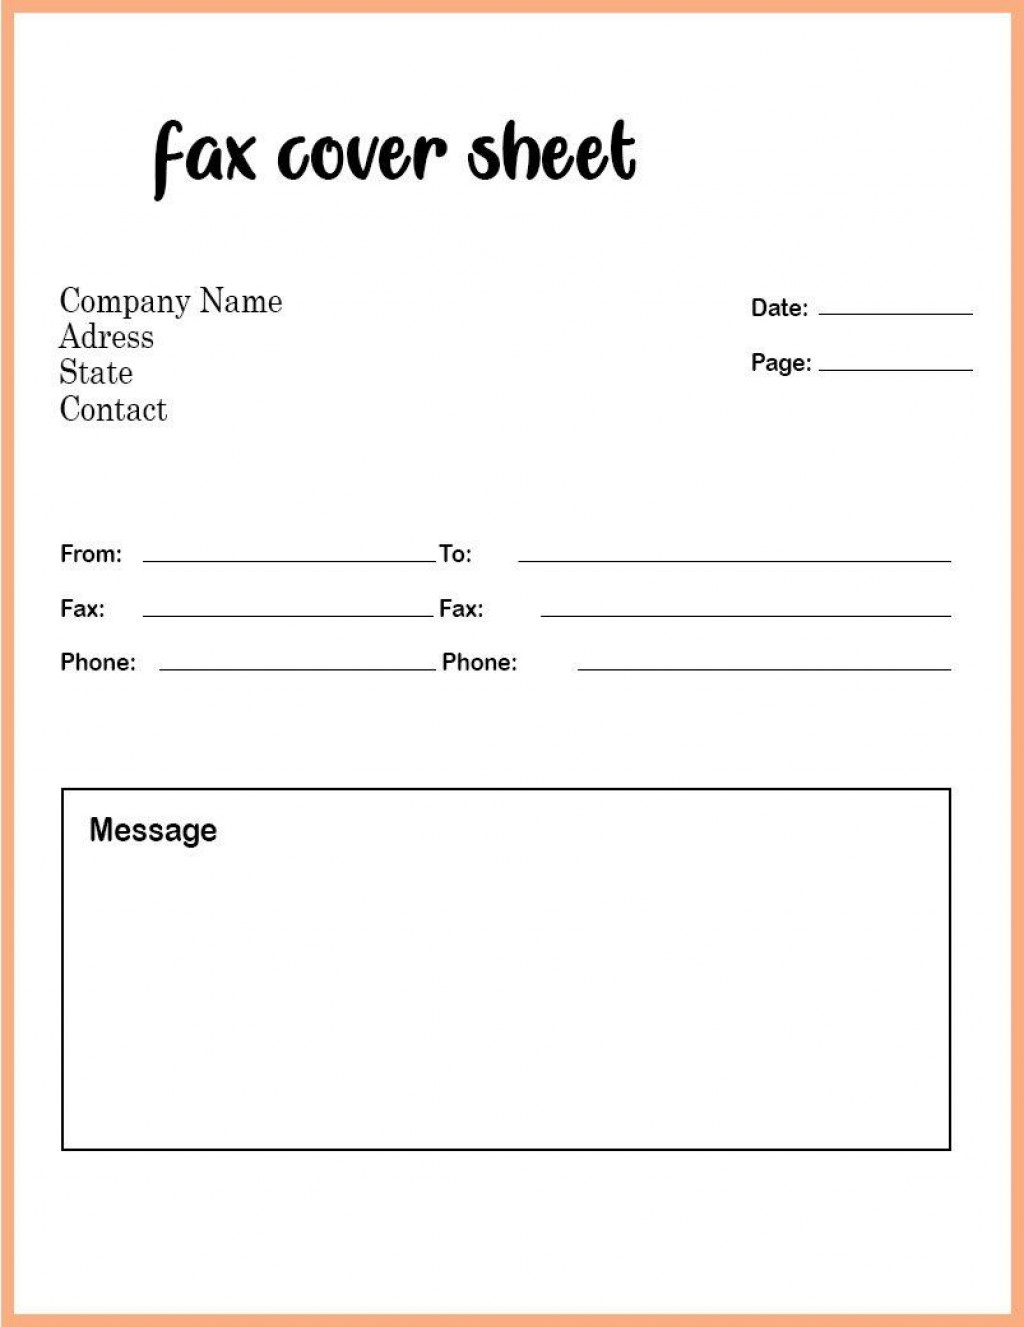 008 Phenomenal Fax Template Microsoft Word Picture  Cover Sheet 2010 Letter BusinesLarge